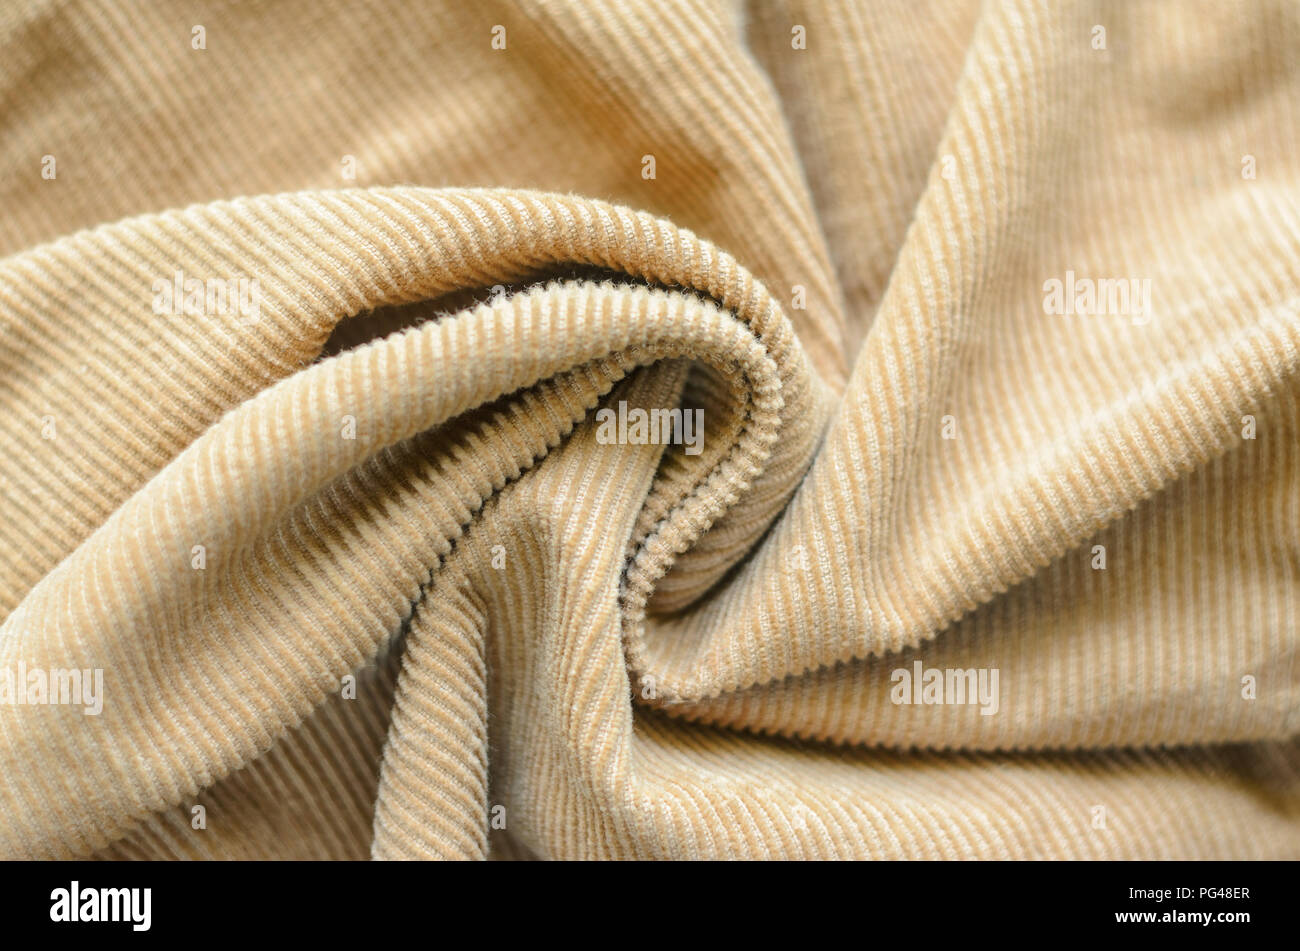 Texture Of Soft Velvet Fabric With Folds Closeup Texture Of Beige Velvet Clothes Textile Fabric Of Corduroy As Background Stock Photo Alamy